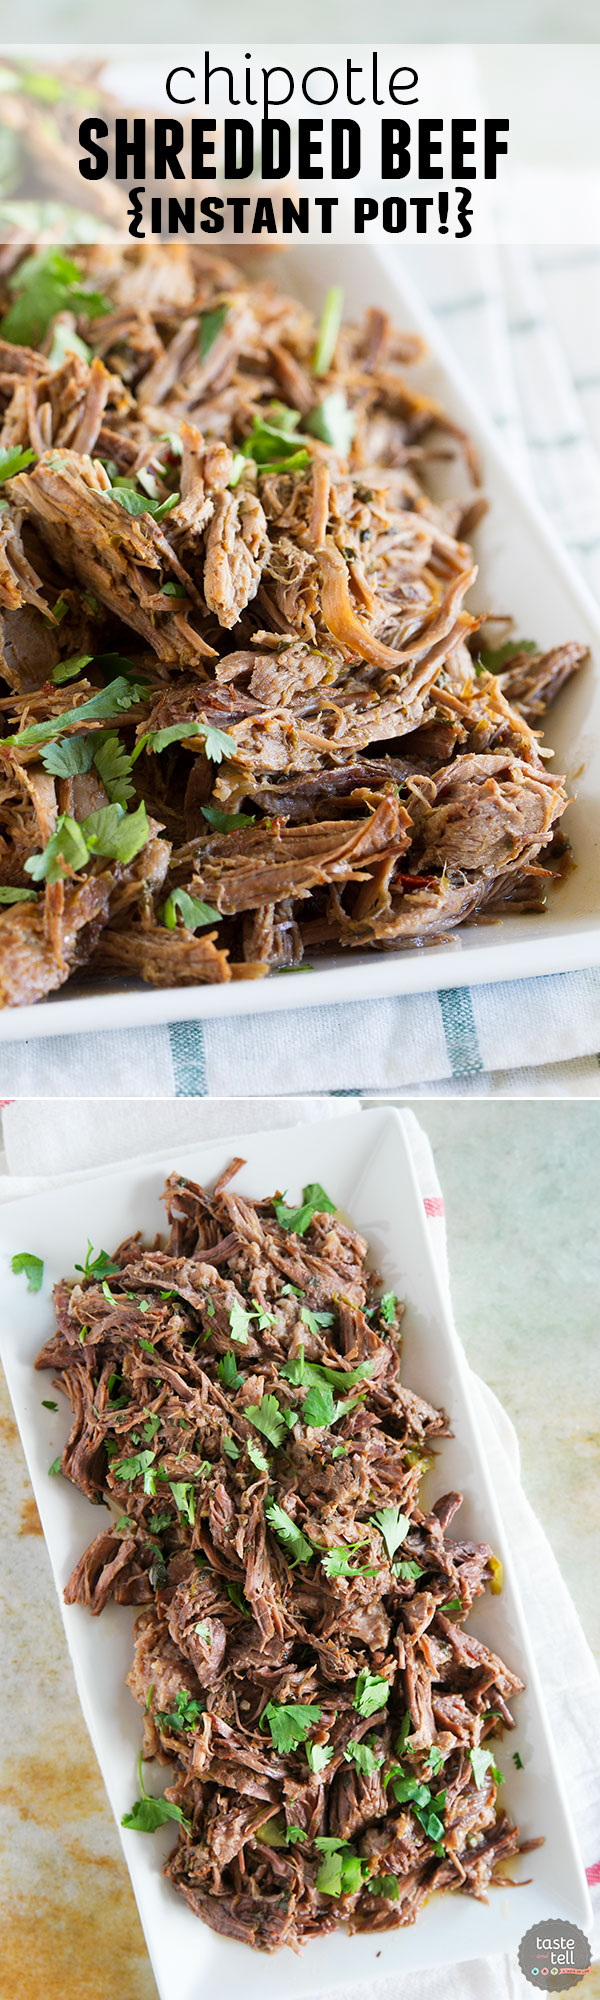 Tender and flavorful, this pressure cooker Chipotle Shredded Beef has just the right amount of spice and is perfect for tacos or burritos. And you can't beat the cooking time!